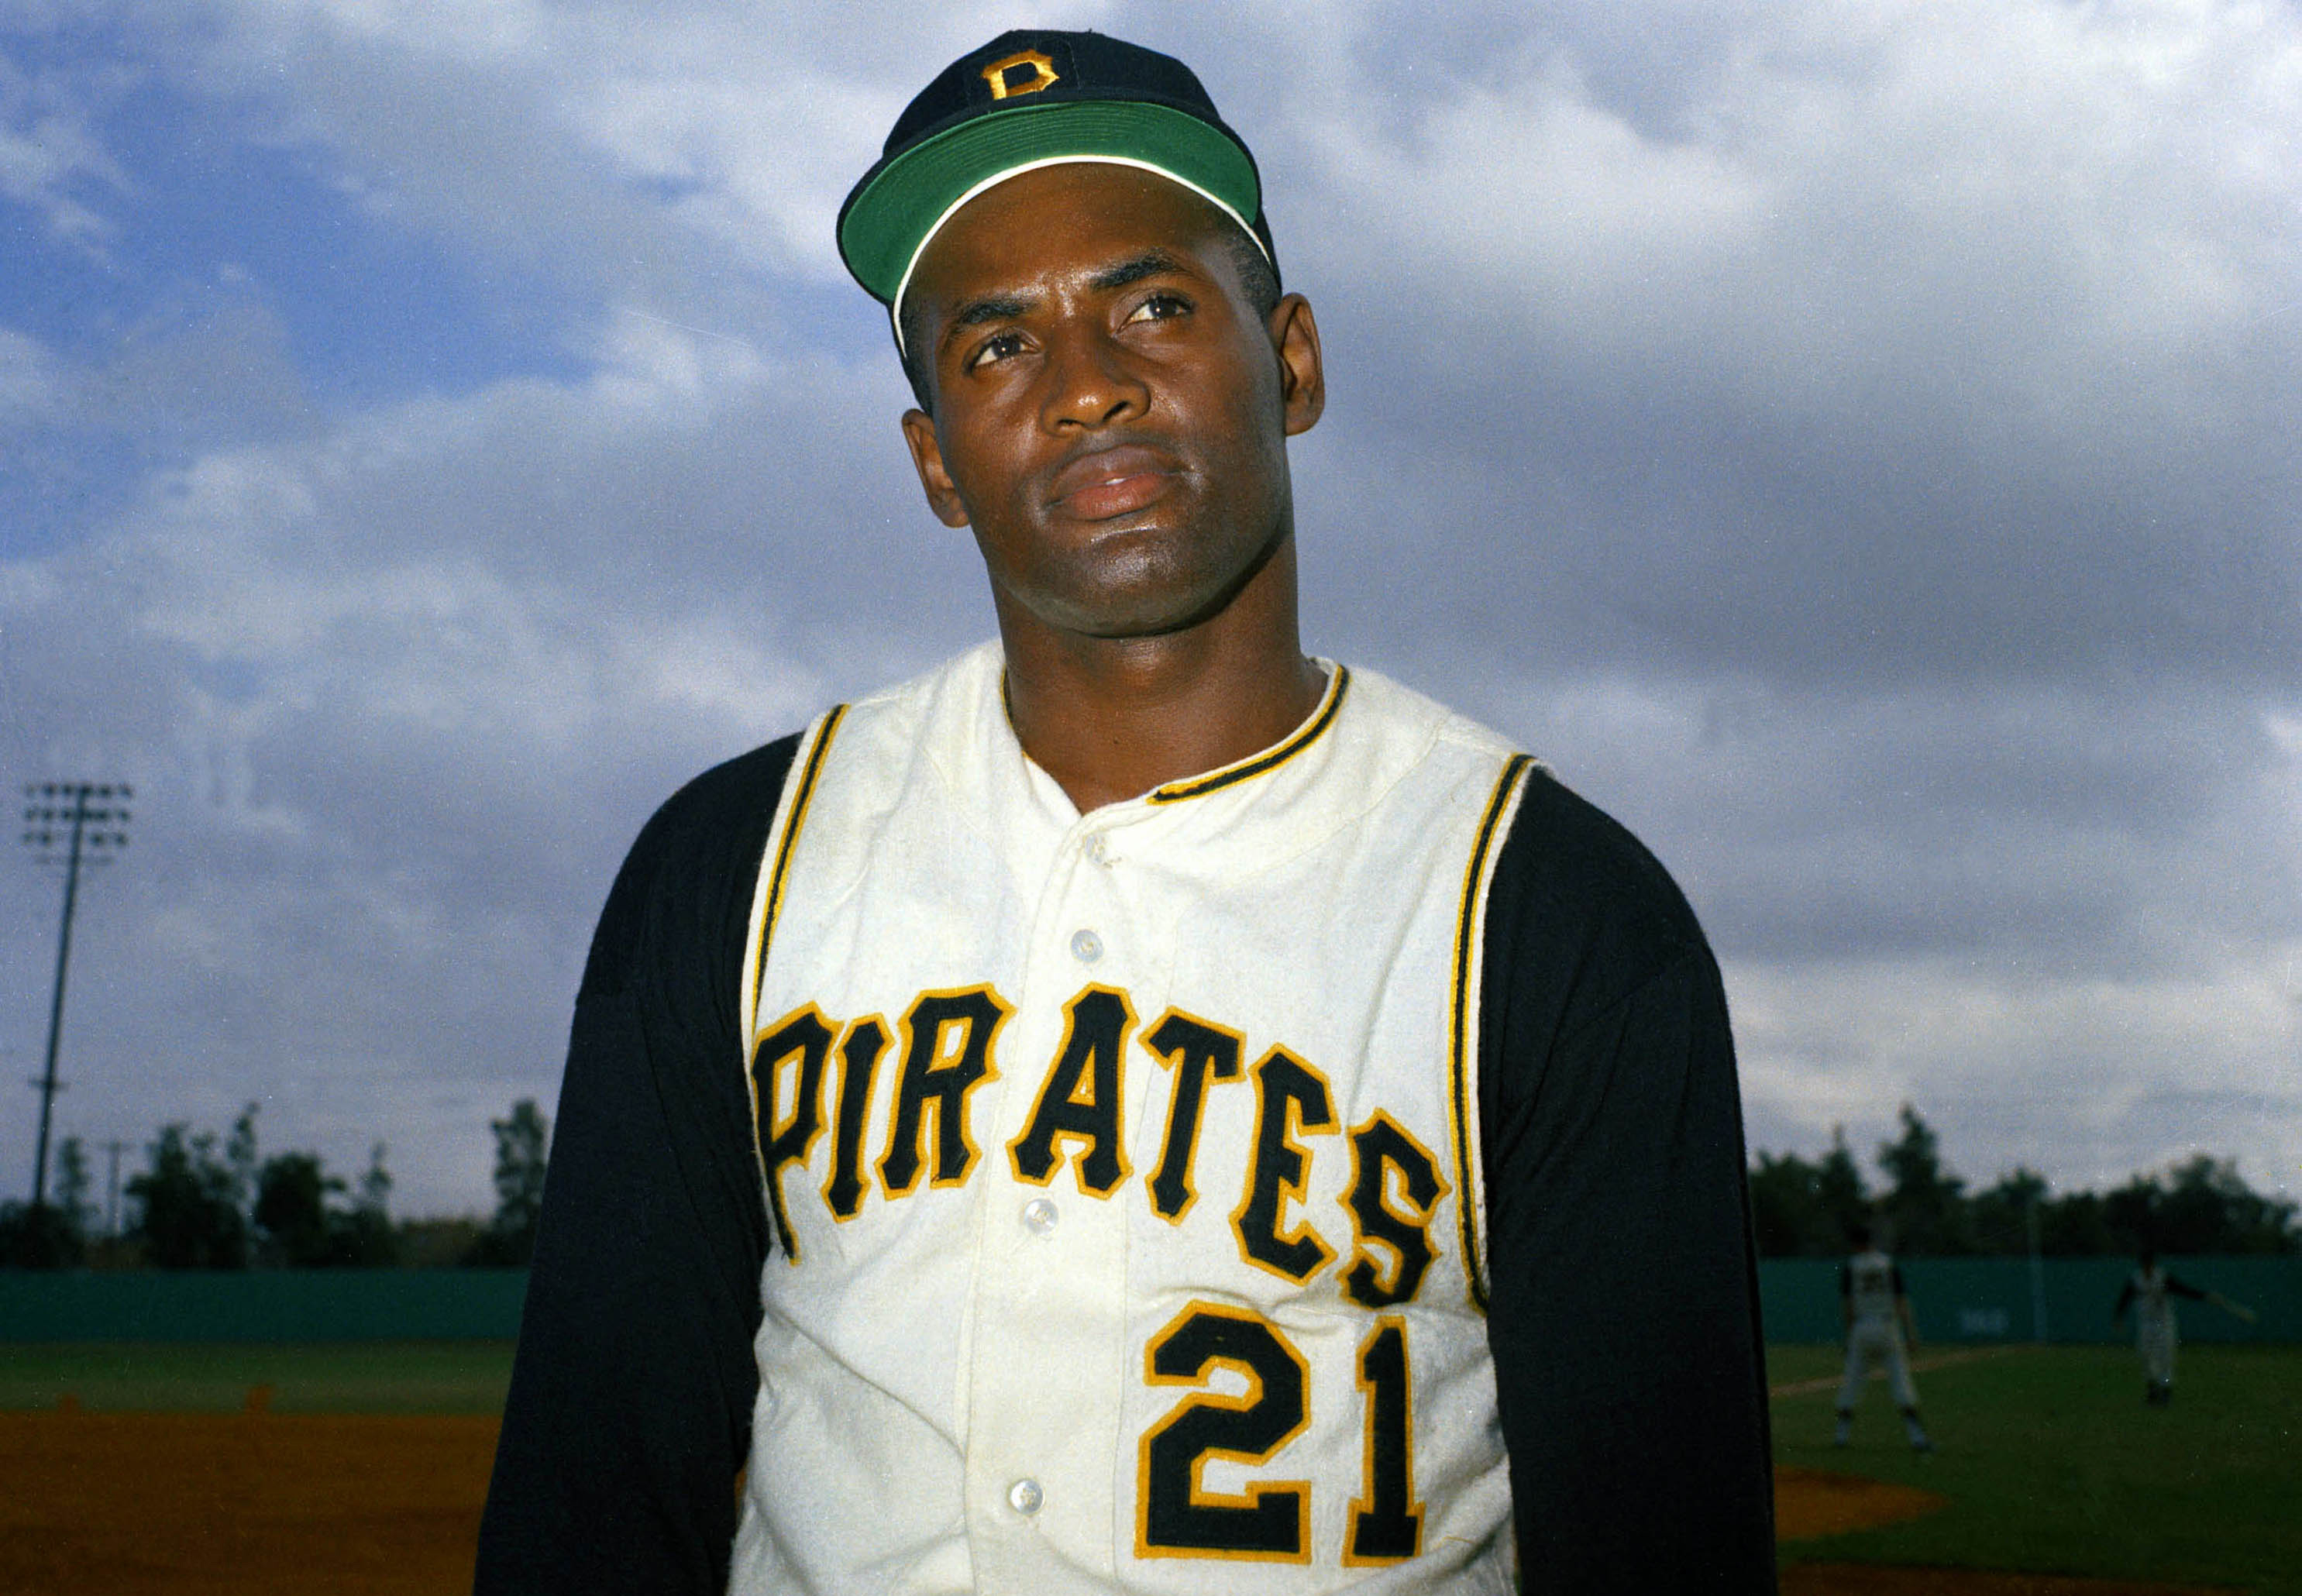 Mlb S Pirates Will Honor Roberto Clemente By Wearing His Number